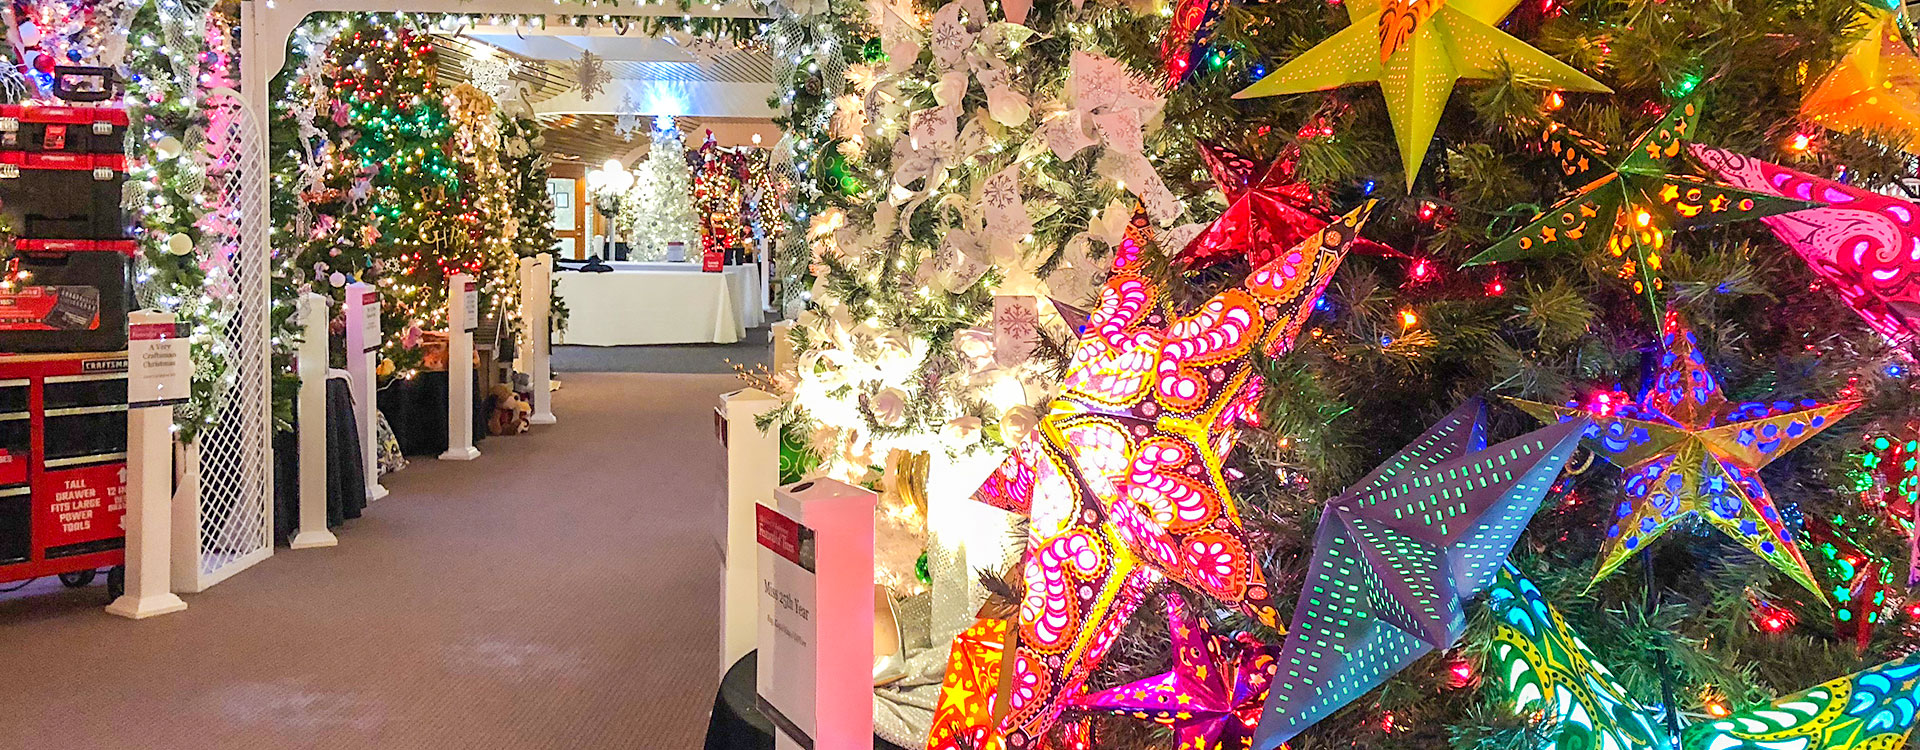 The exquisitely decorated holiday trees are set up at the annual Festival of Trees in Methuen, Massachusetts.